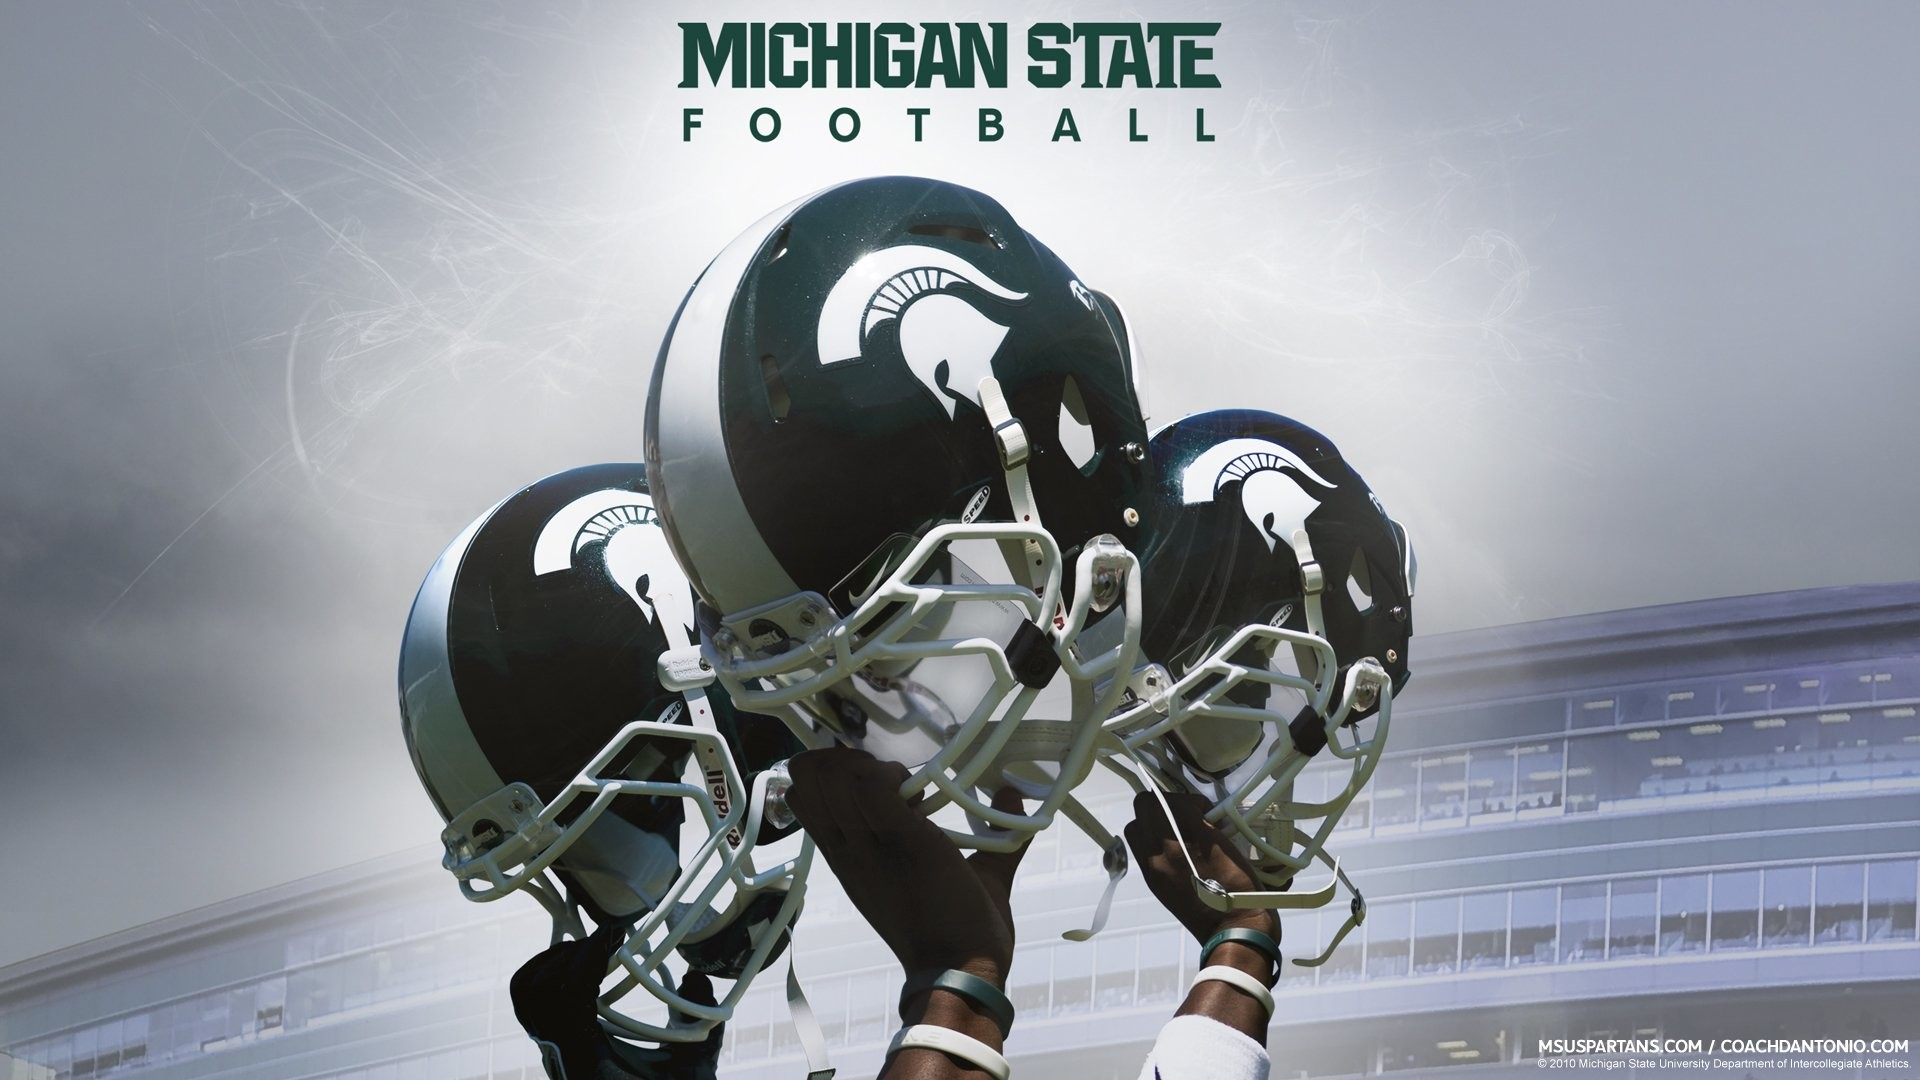 MICHIGAN STATE SPARTANS college football wallpaper background by .